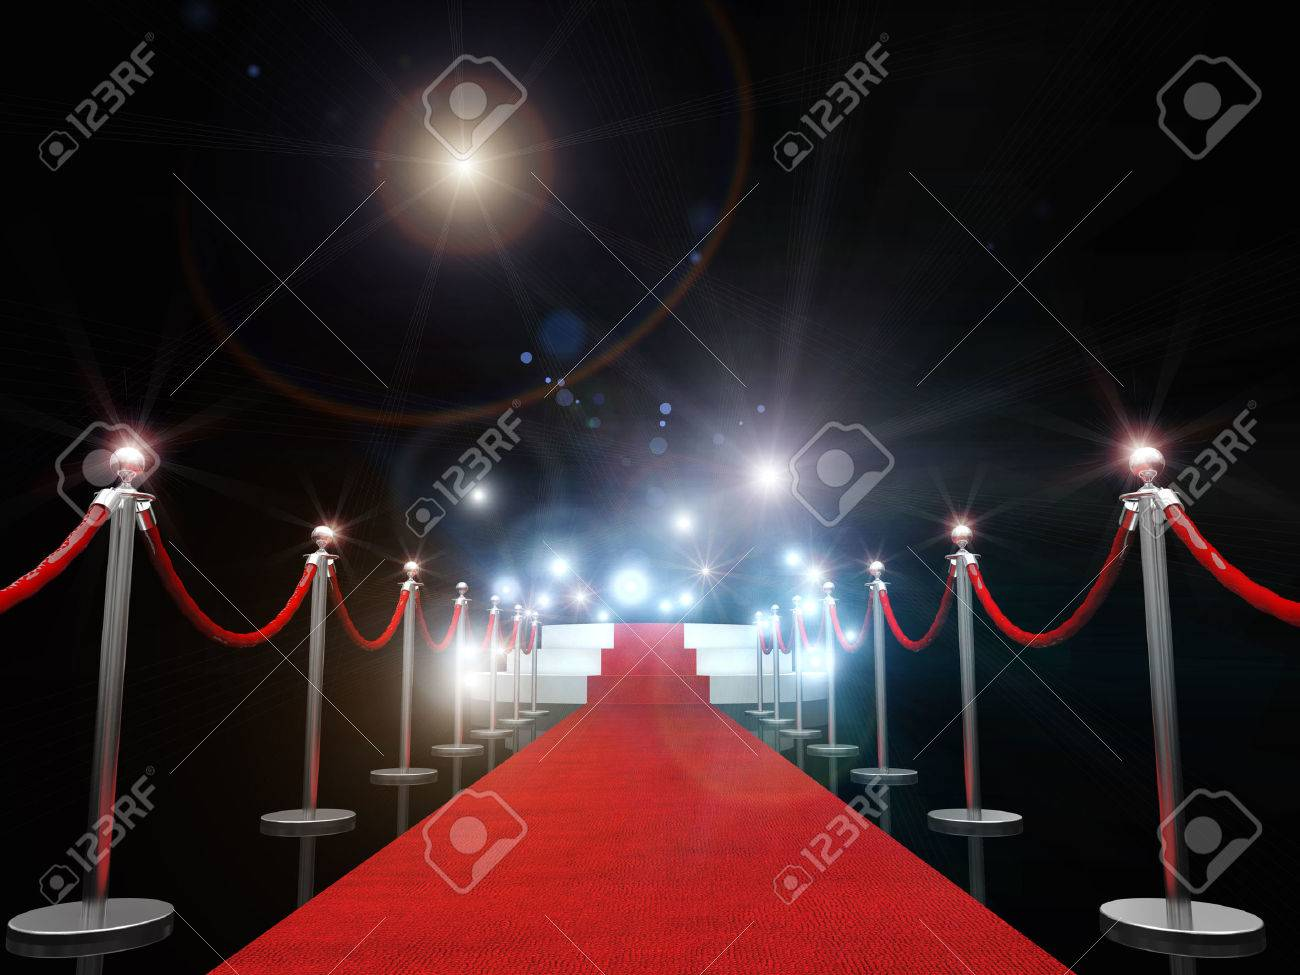 3d image of classic red carpet - 50712510